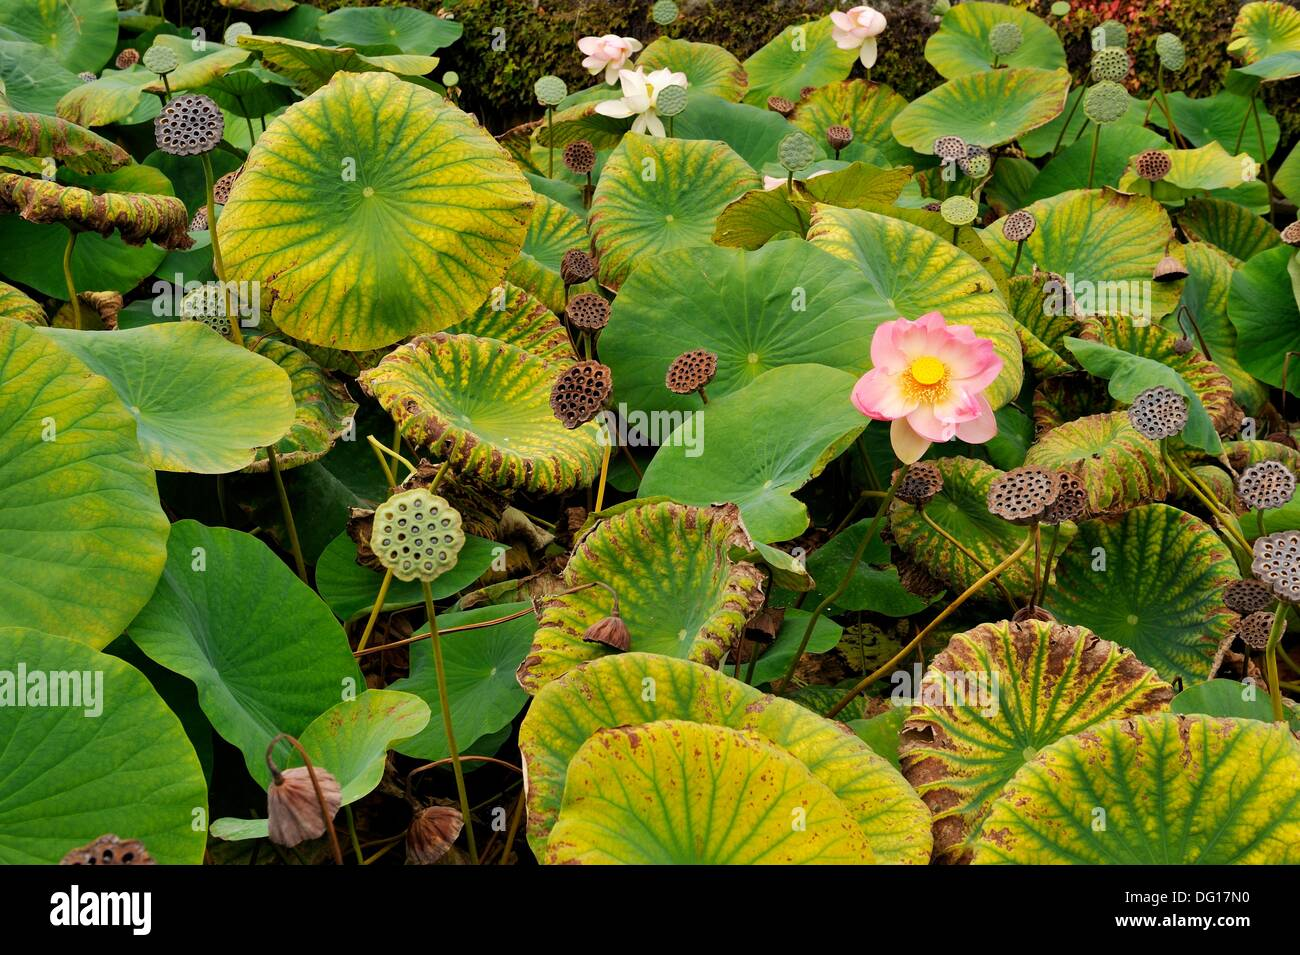 lotus flowers in the moats of the Chateau Beauregard, Pomerol, Gironde department, Aquitaine region, south-western France, - Stock Image